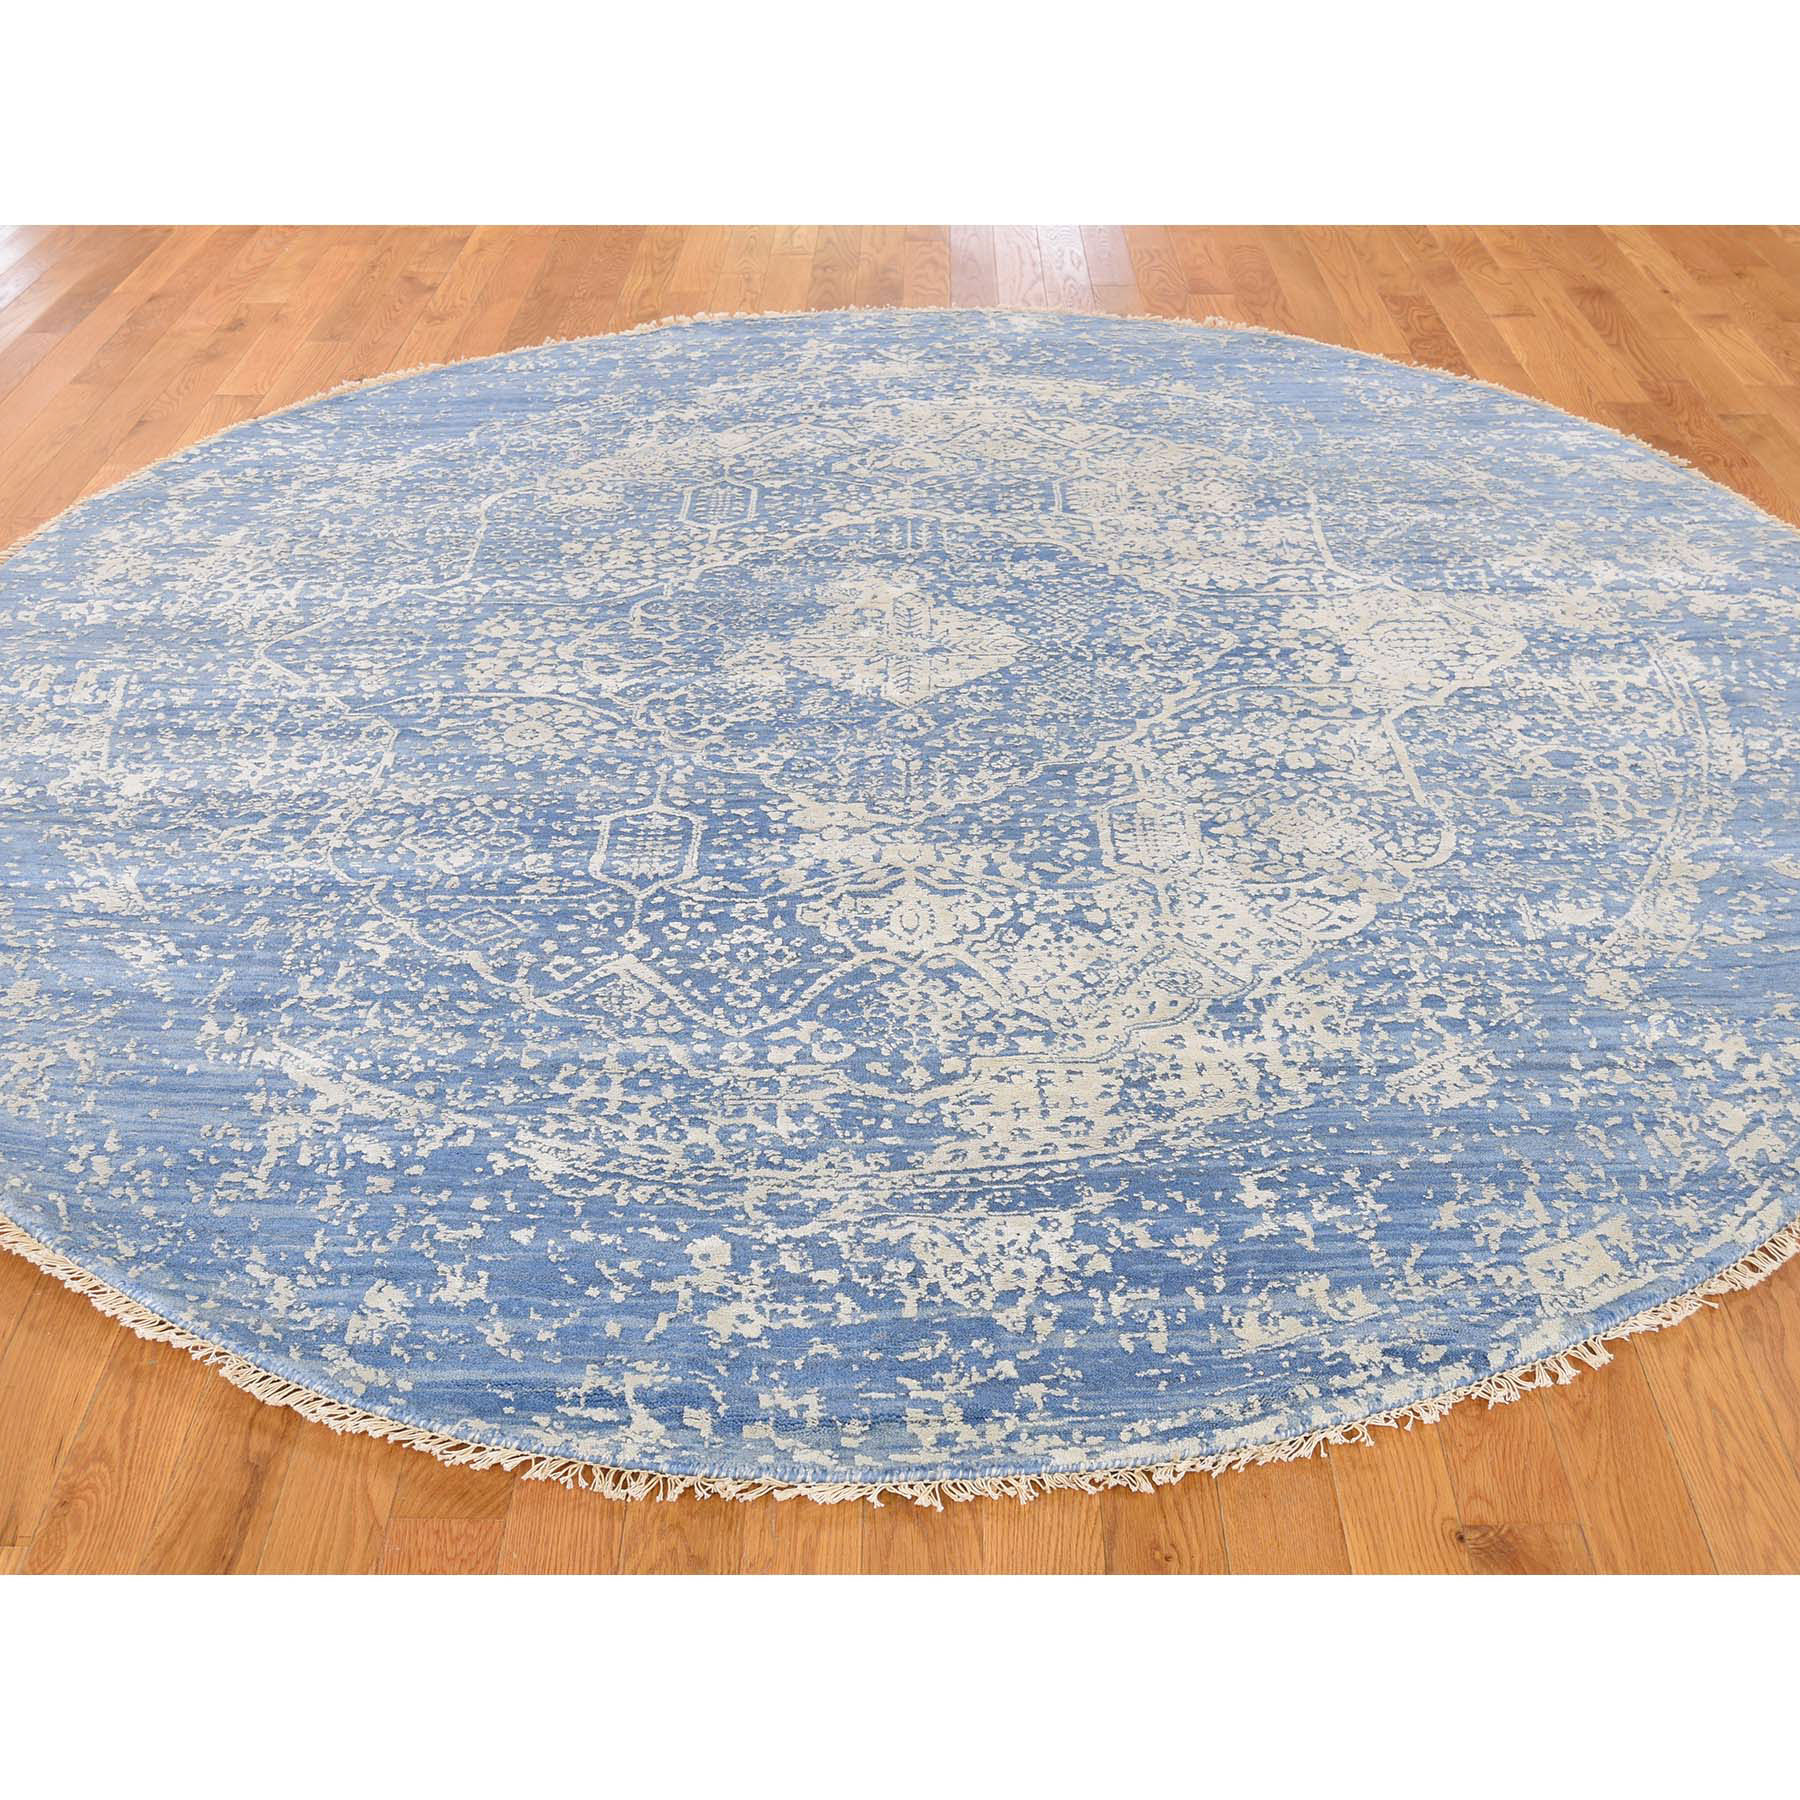 8-x8- Wool and Pure Silk Round Broken Persian Design Hand Knotted Rug